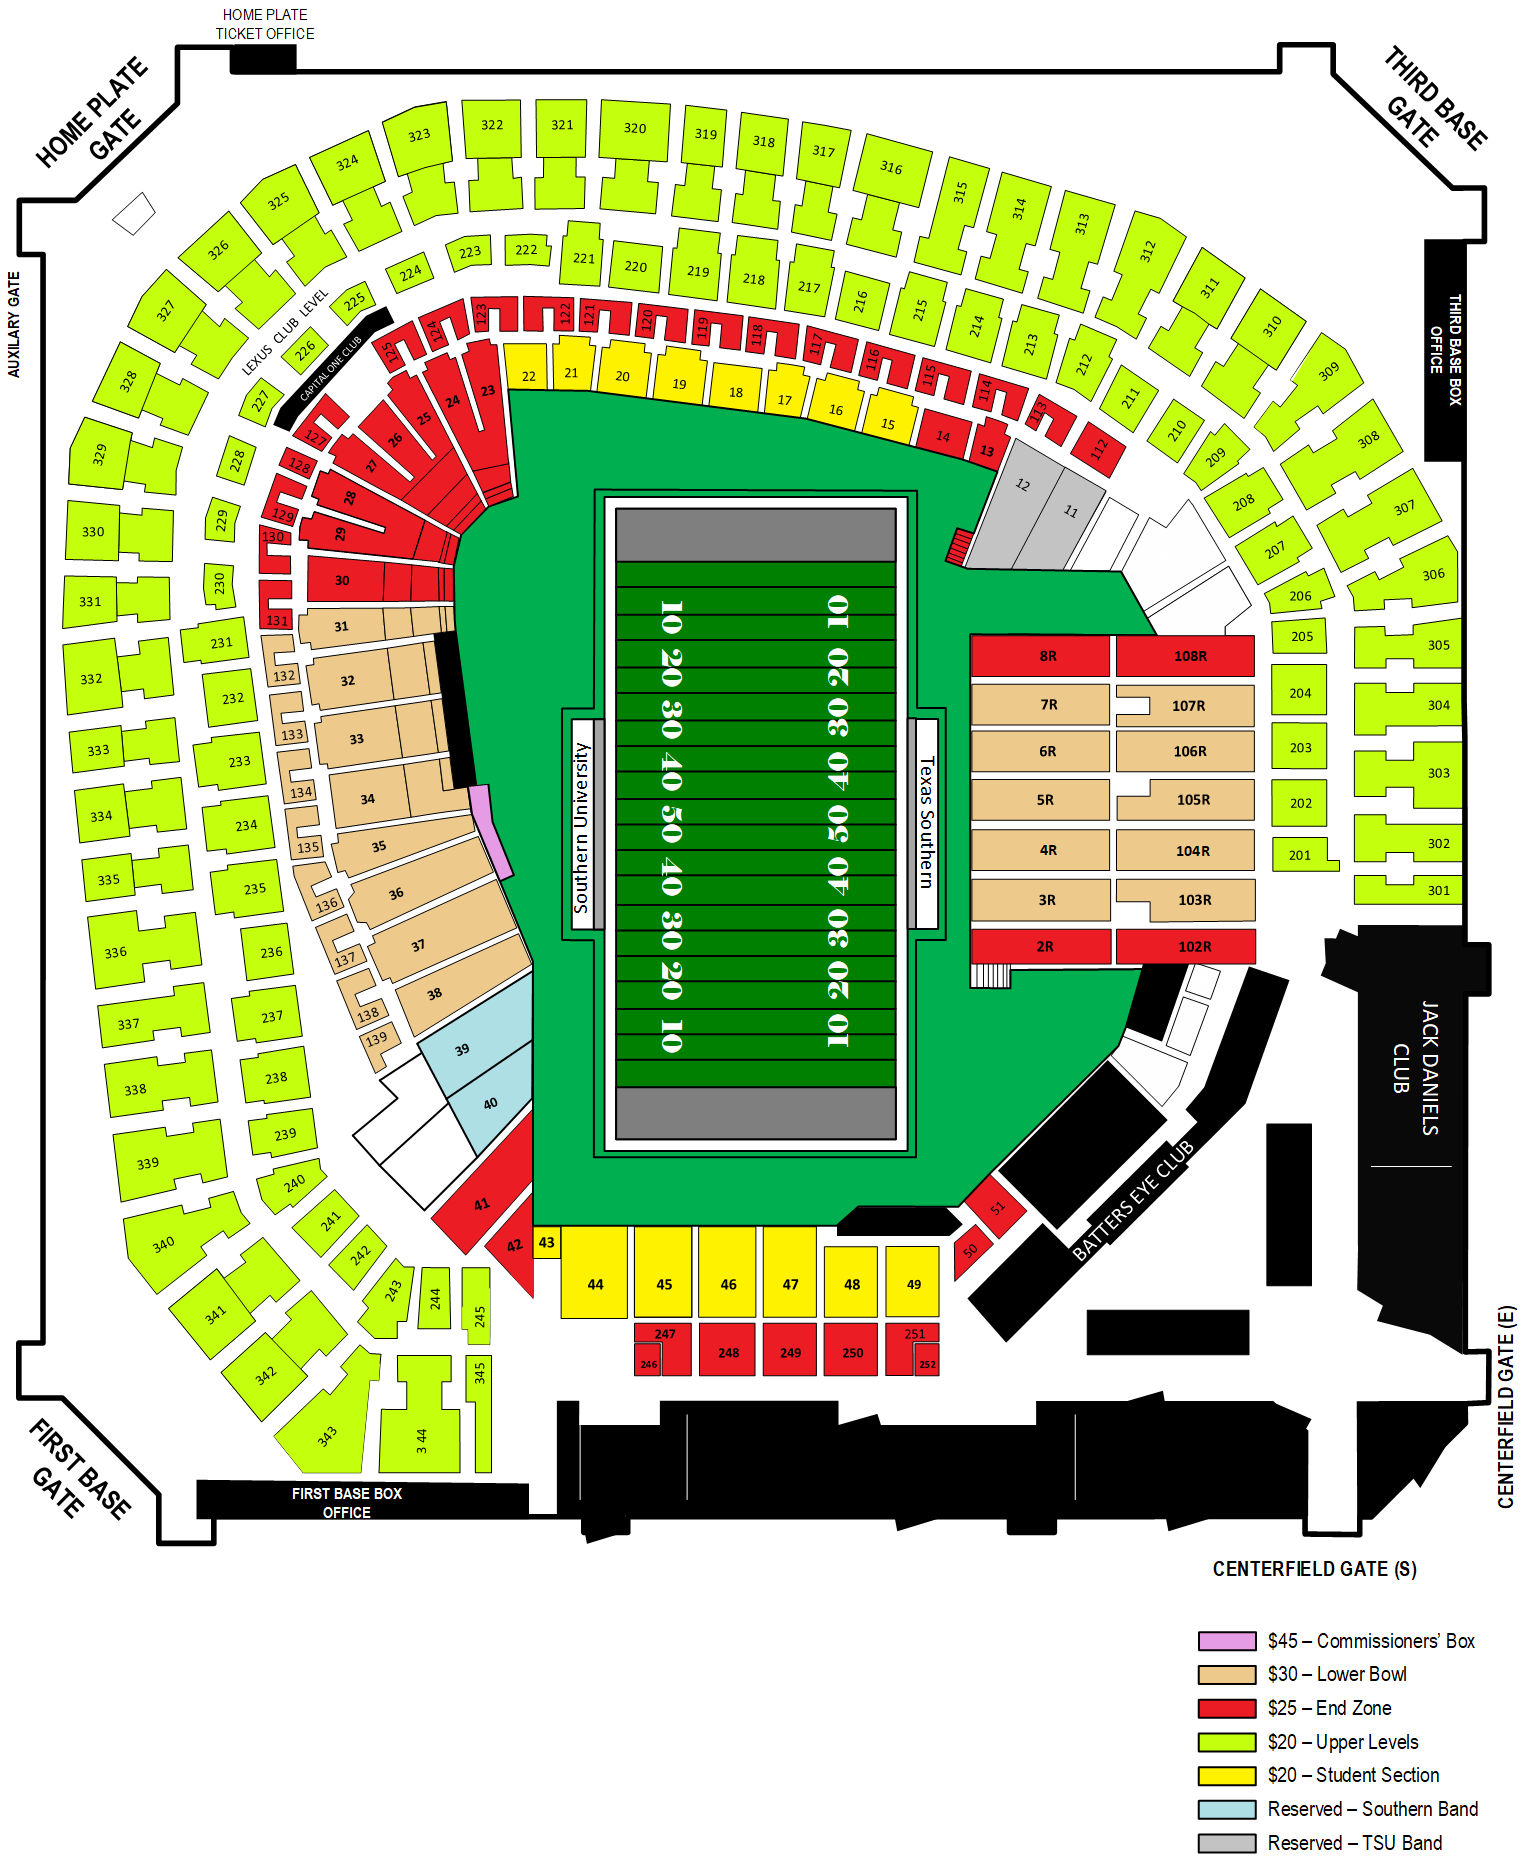 2021 AFS Seating Map